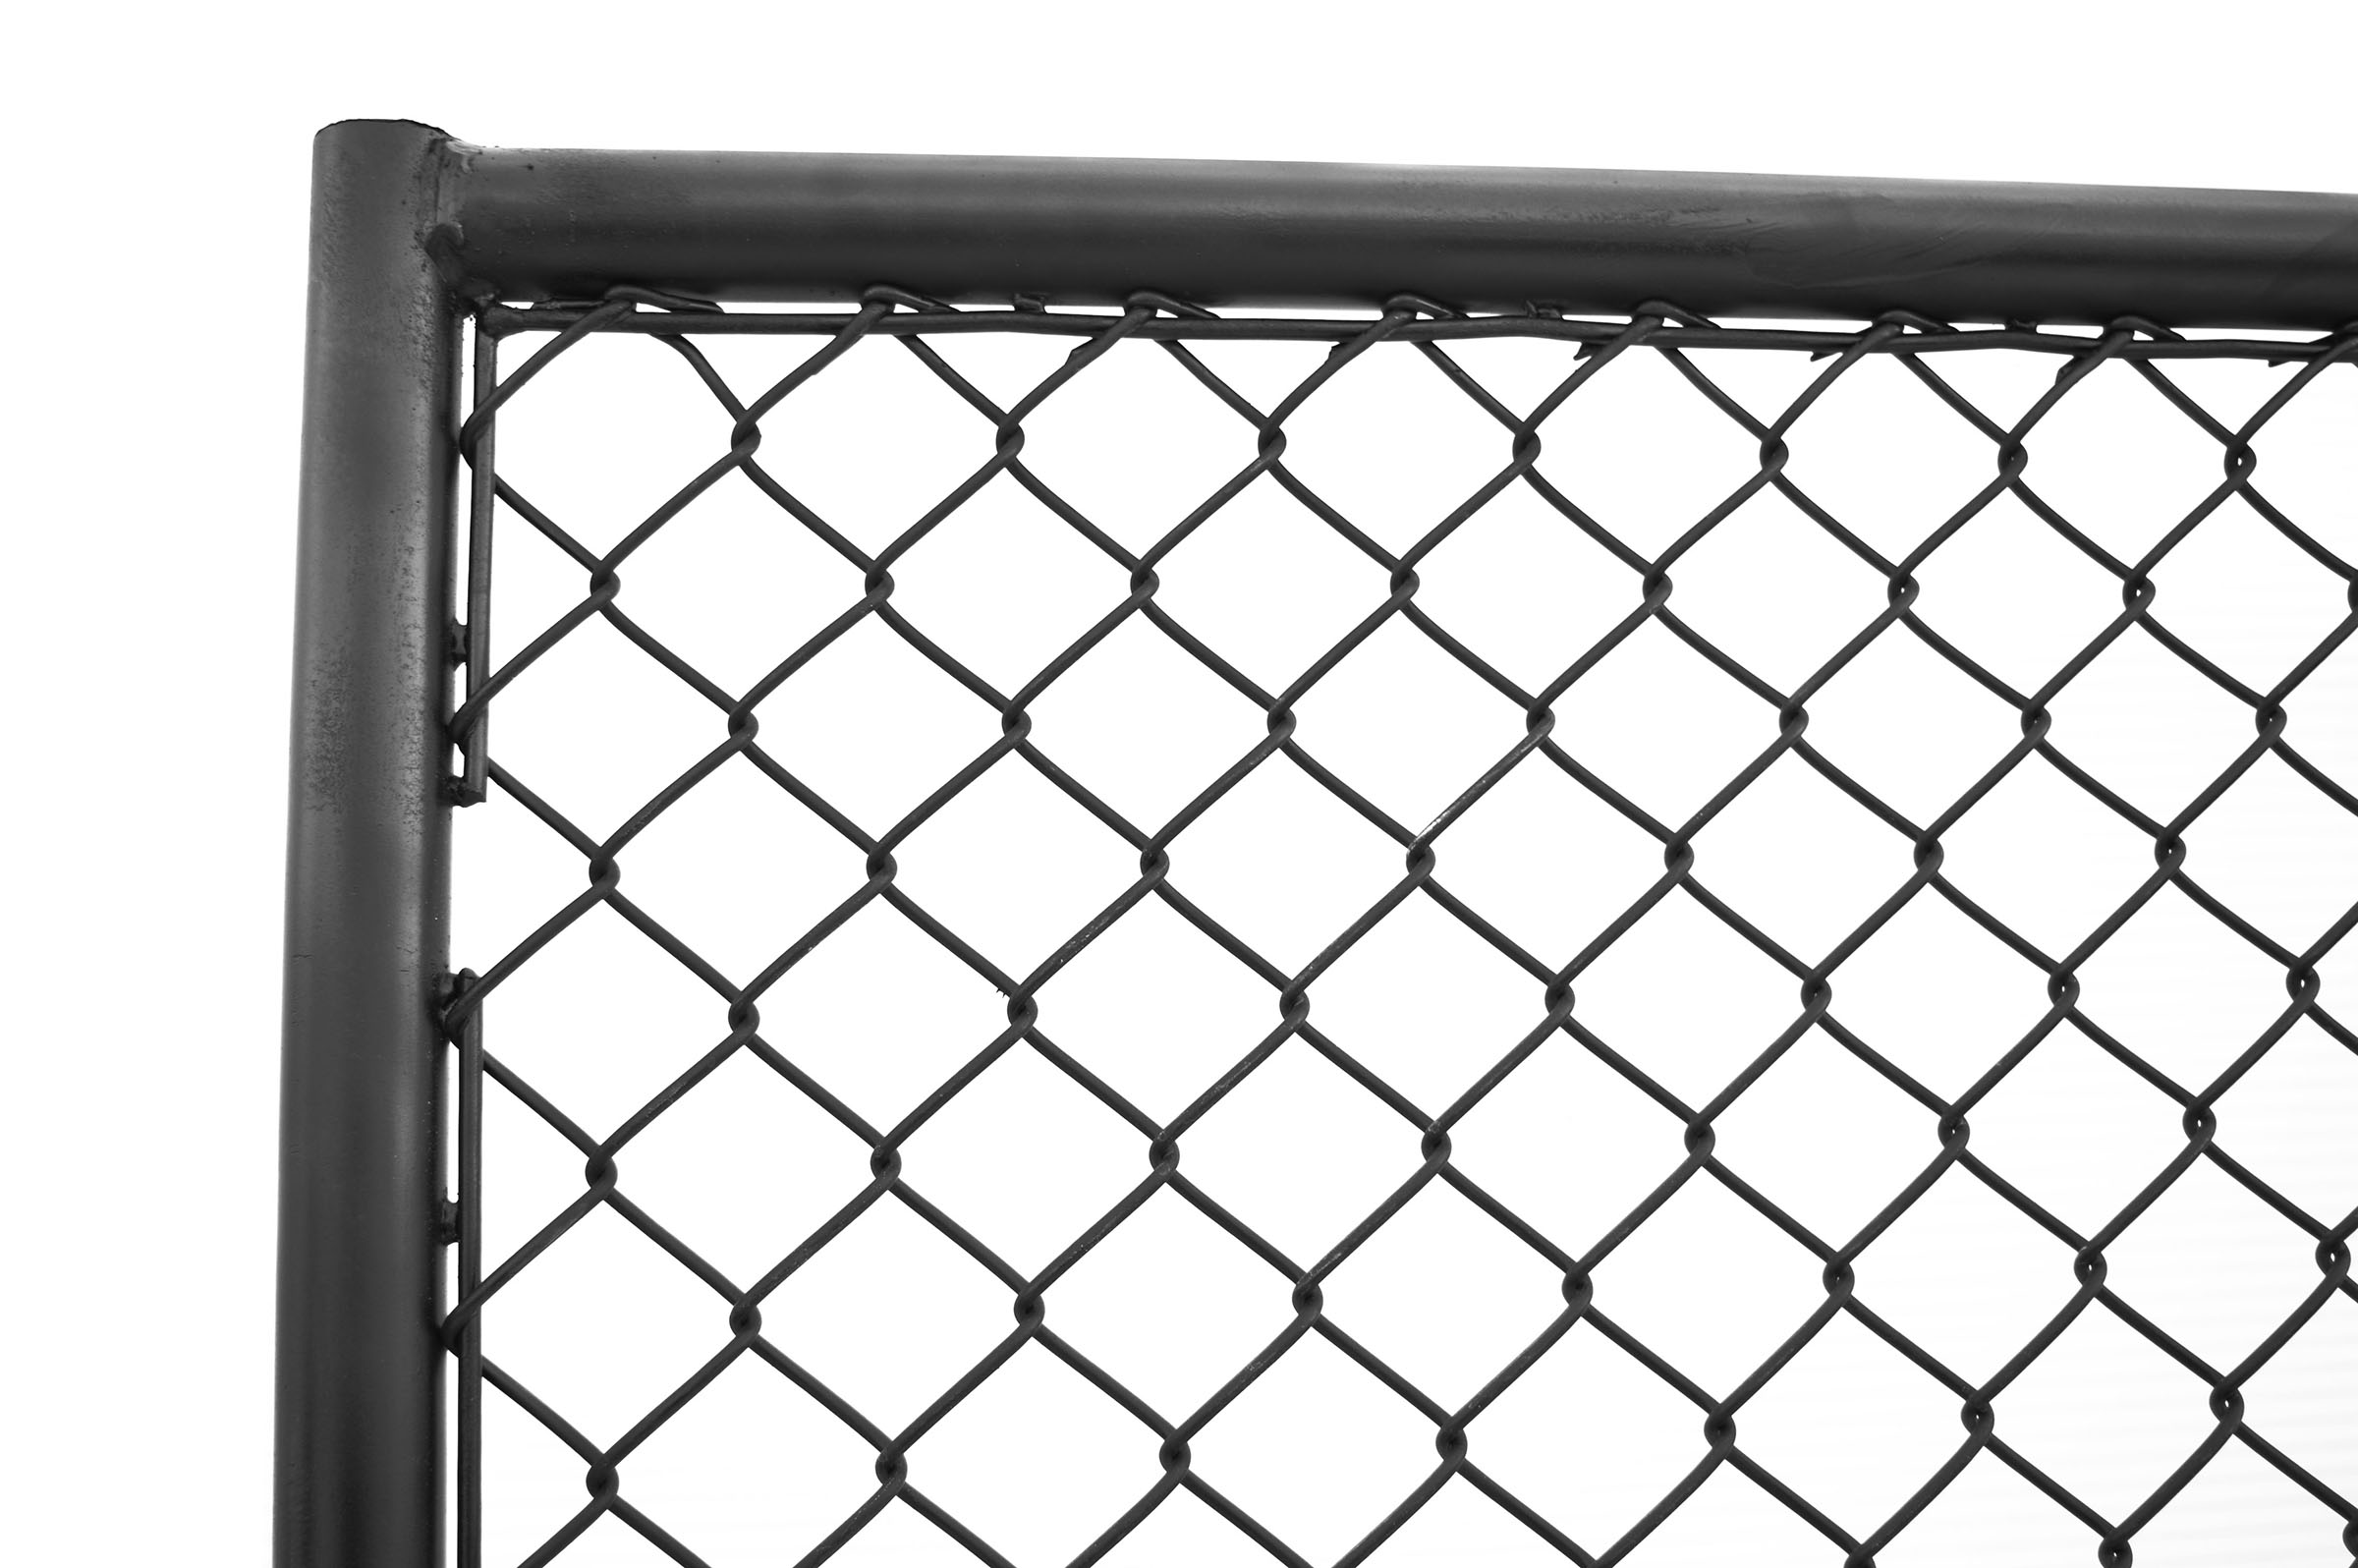 MMA Cages & Accessories